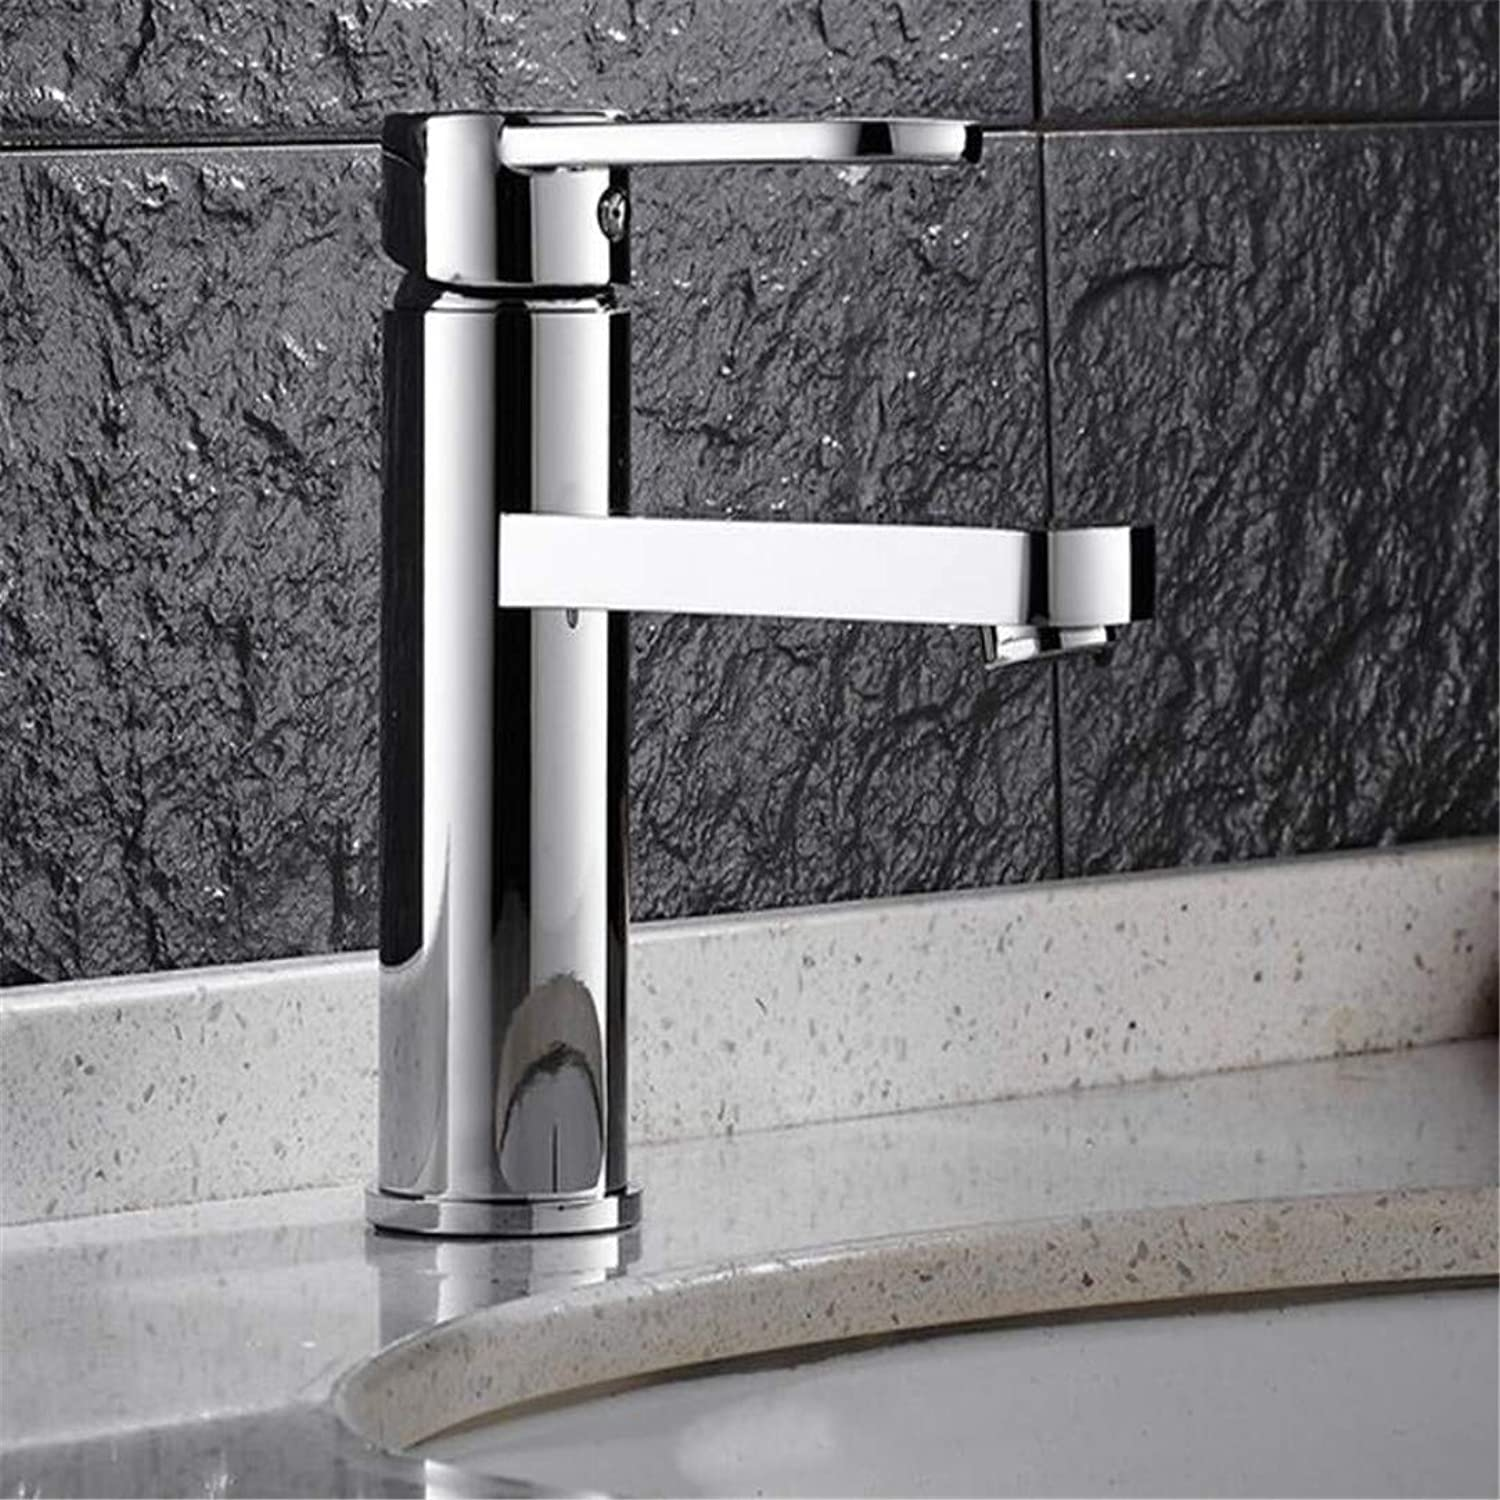 Sink Faucet Sink Water Tap Mixer Deck Mounted Washing Basin Faucet Crane